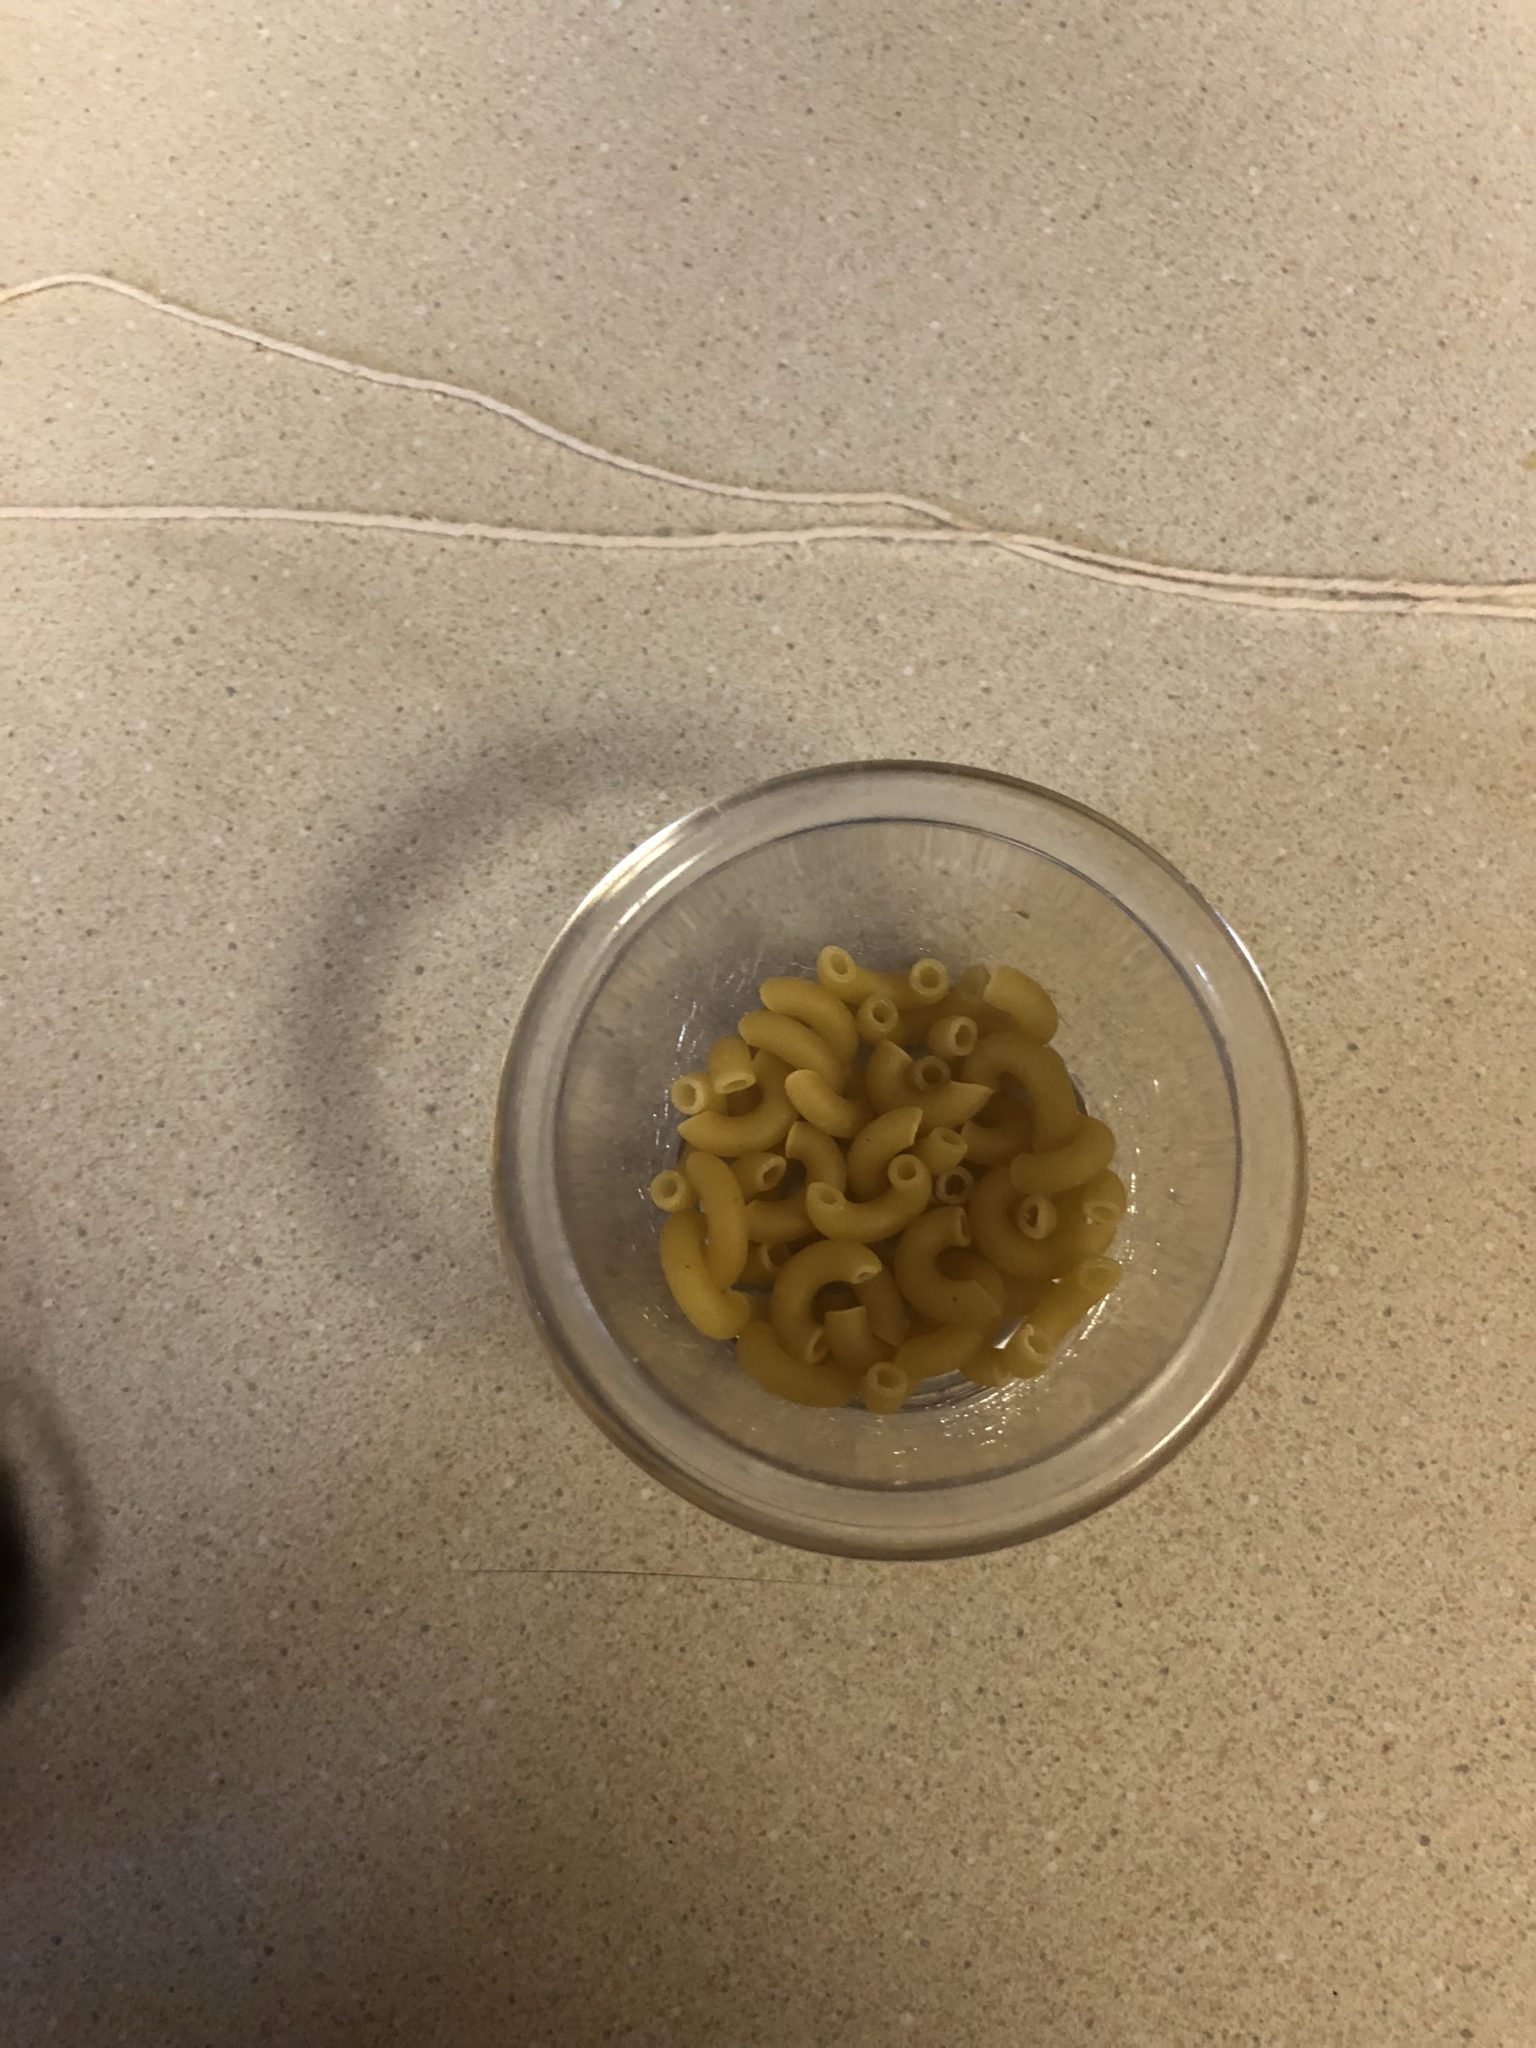 Small cup of macaroni with the string above it.